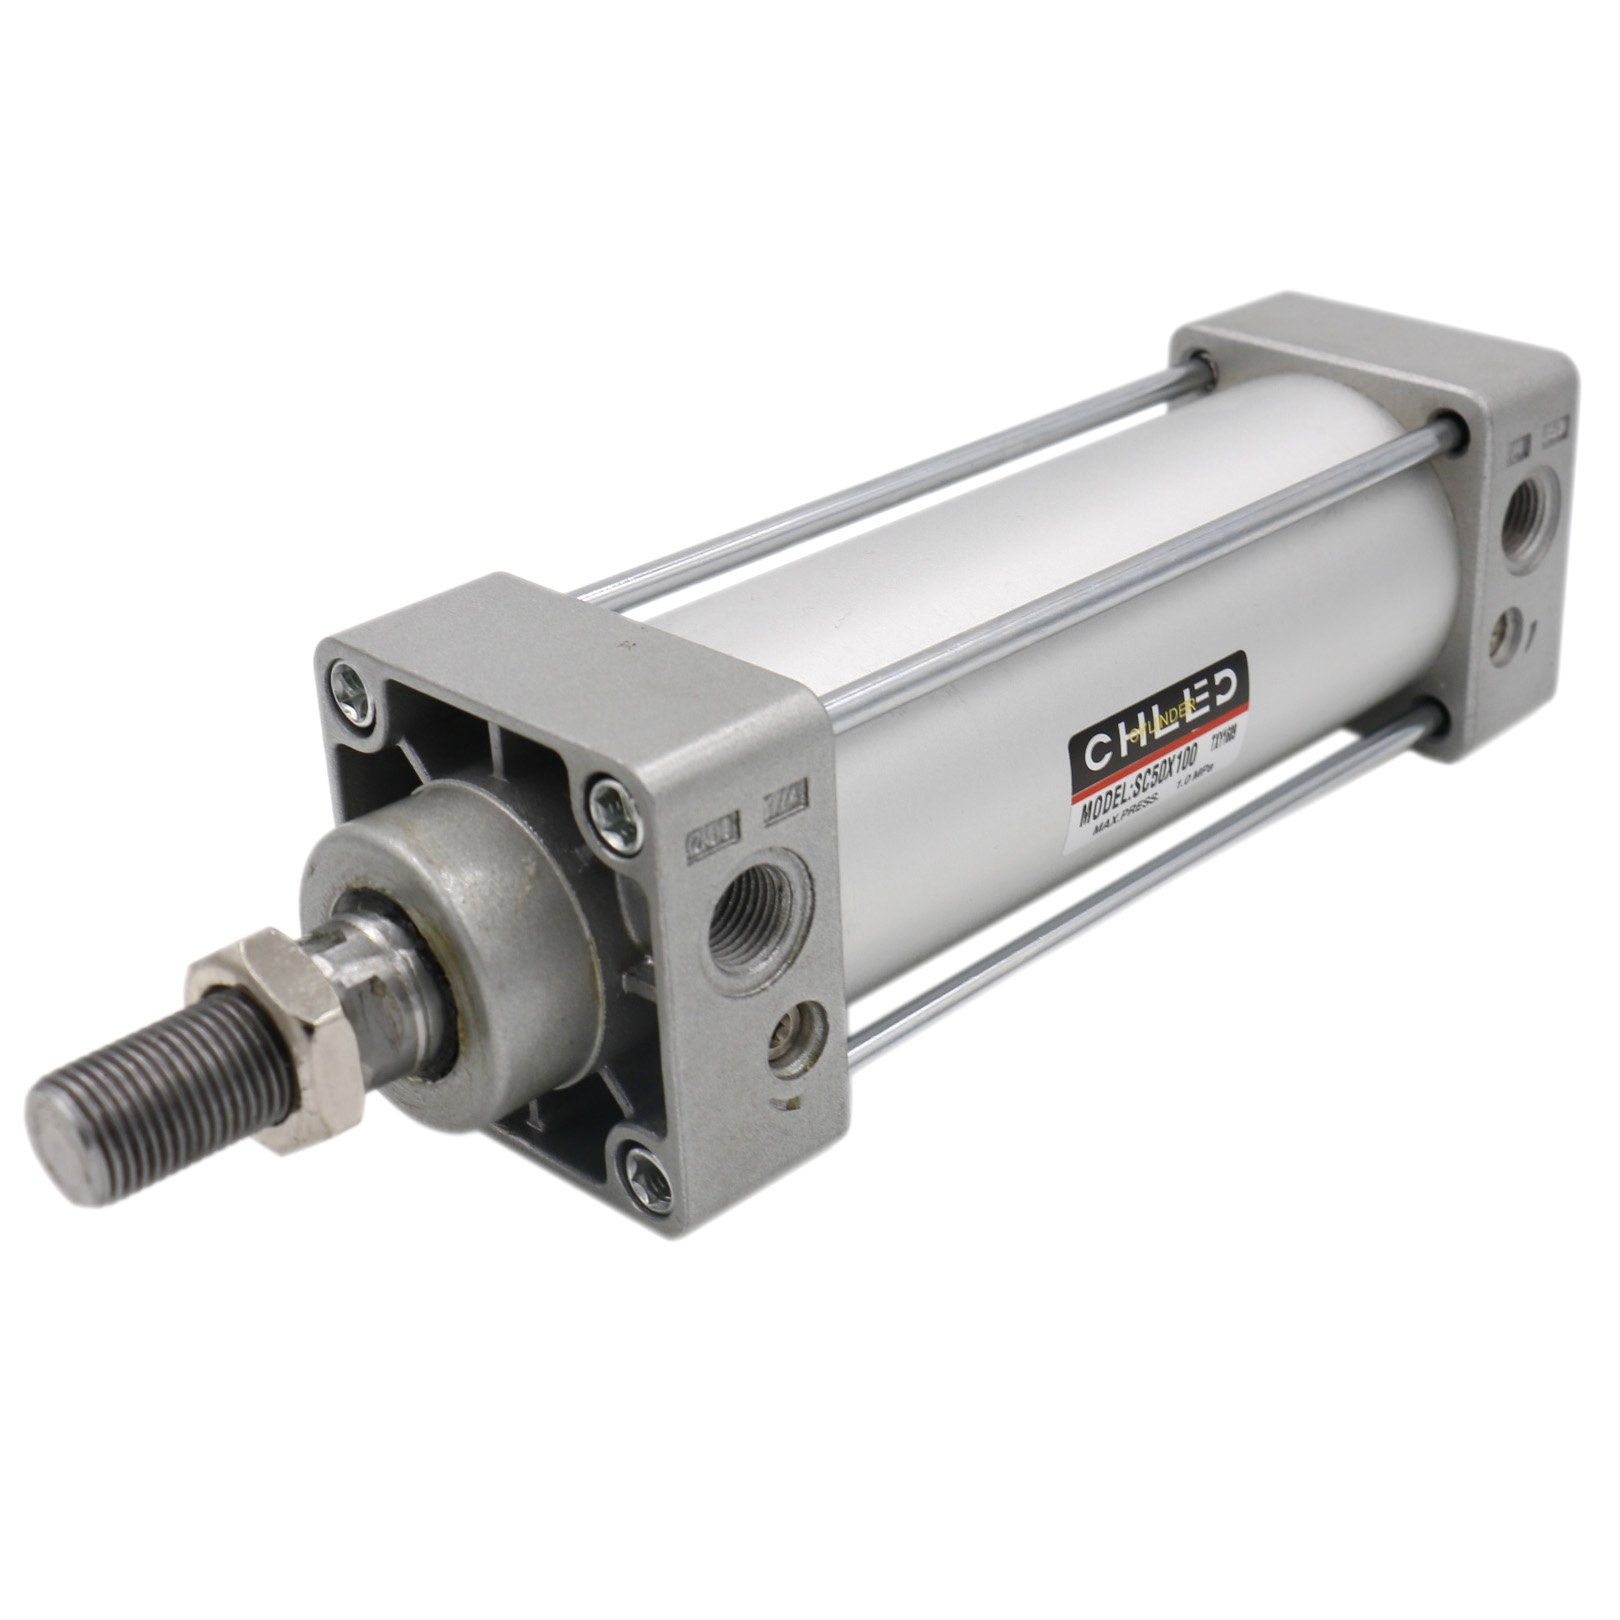 Baomain Pneumatic Air Cylinder SC 50 x 100 PT 1/4, Bore: 50mm, Stroke: 100mm, Screwed Piston Rod Dual Action 1 Mpa